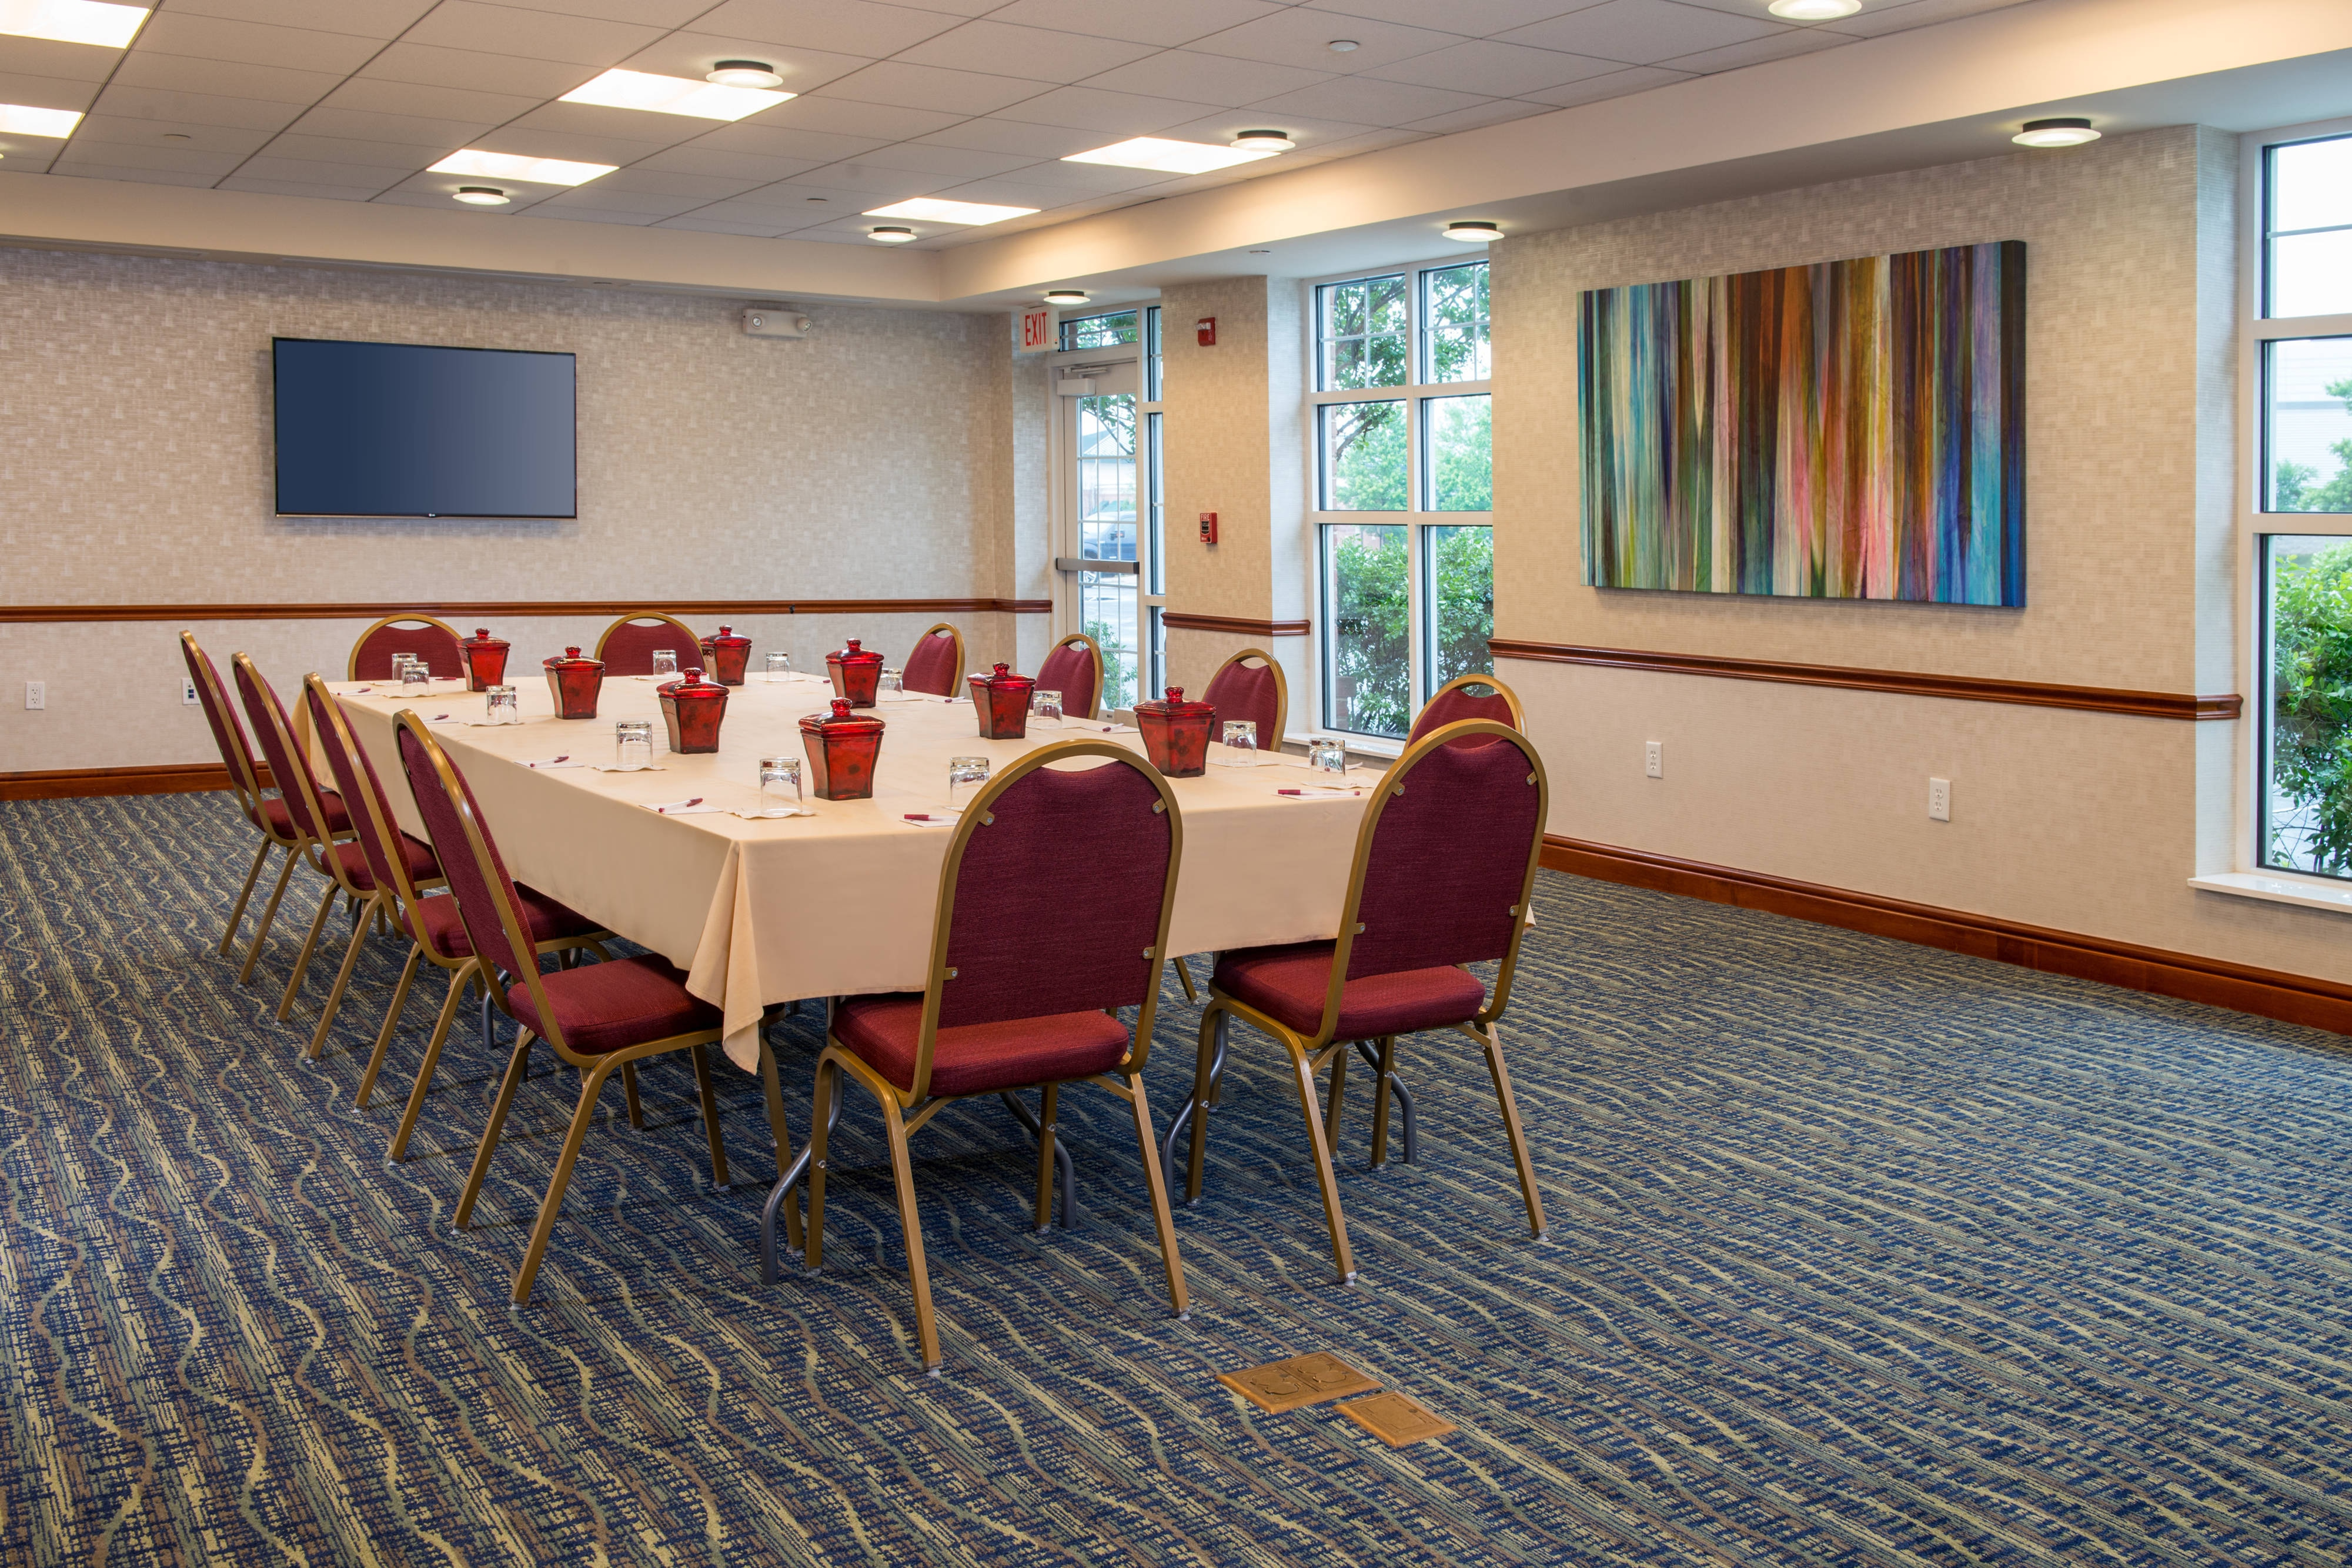 Dulles Airport Hotel Meeting Rooms